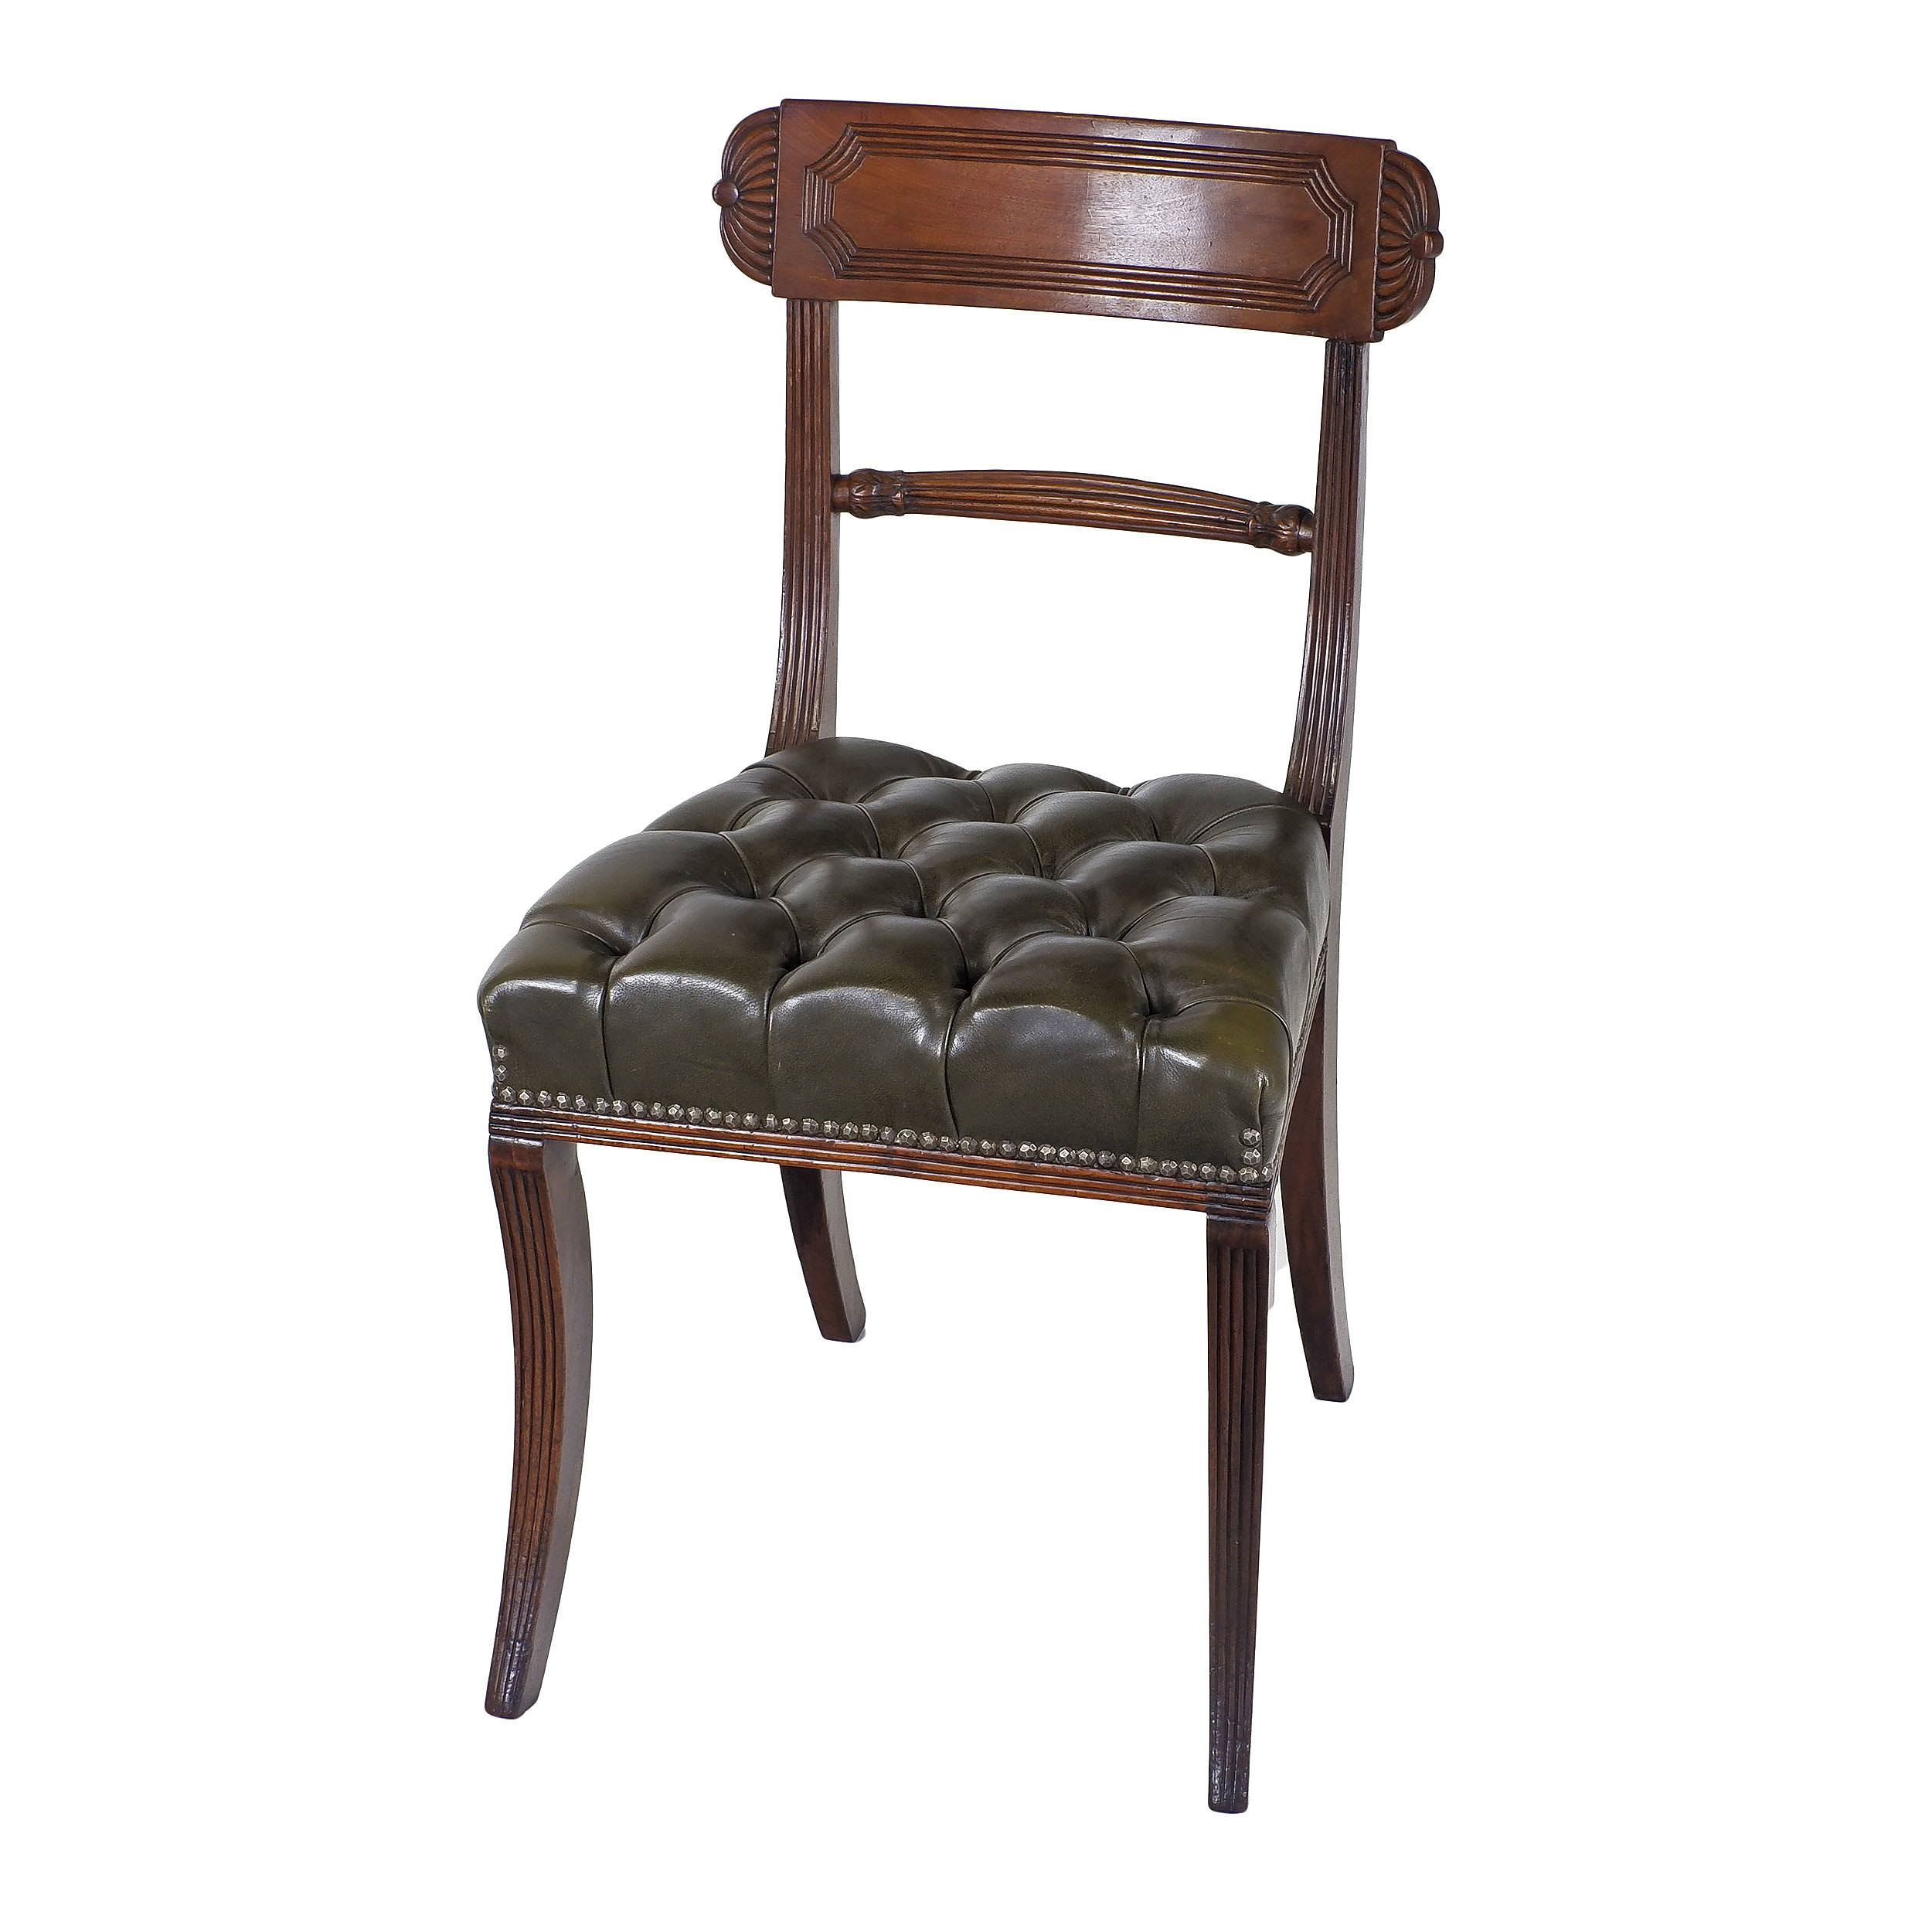 'Regency Mahogany Dining Chair with Reeded Sabre Legs and Diamond Buttoned Leather Upholstery Circa 1820'